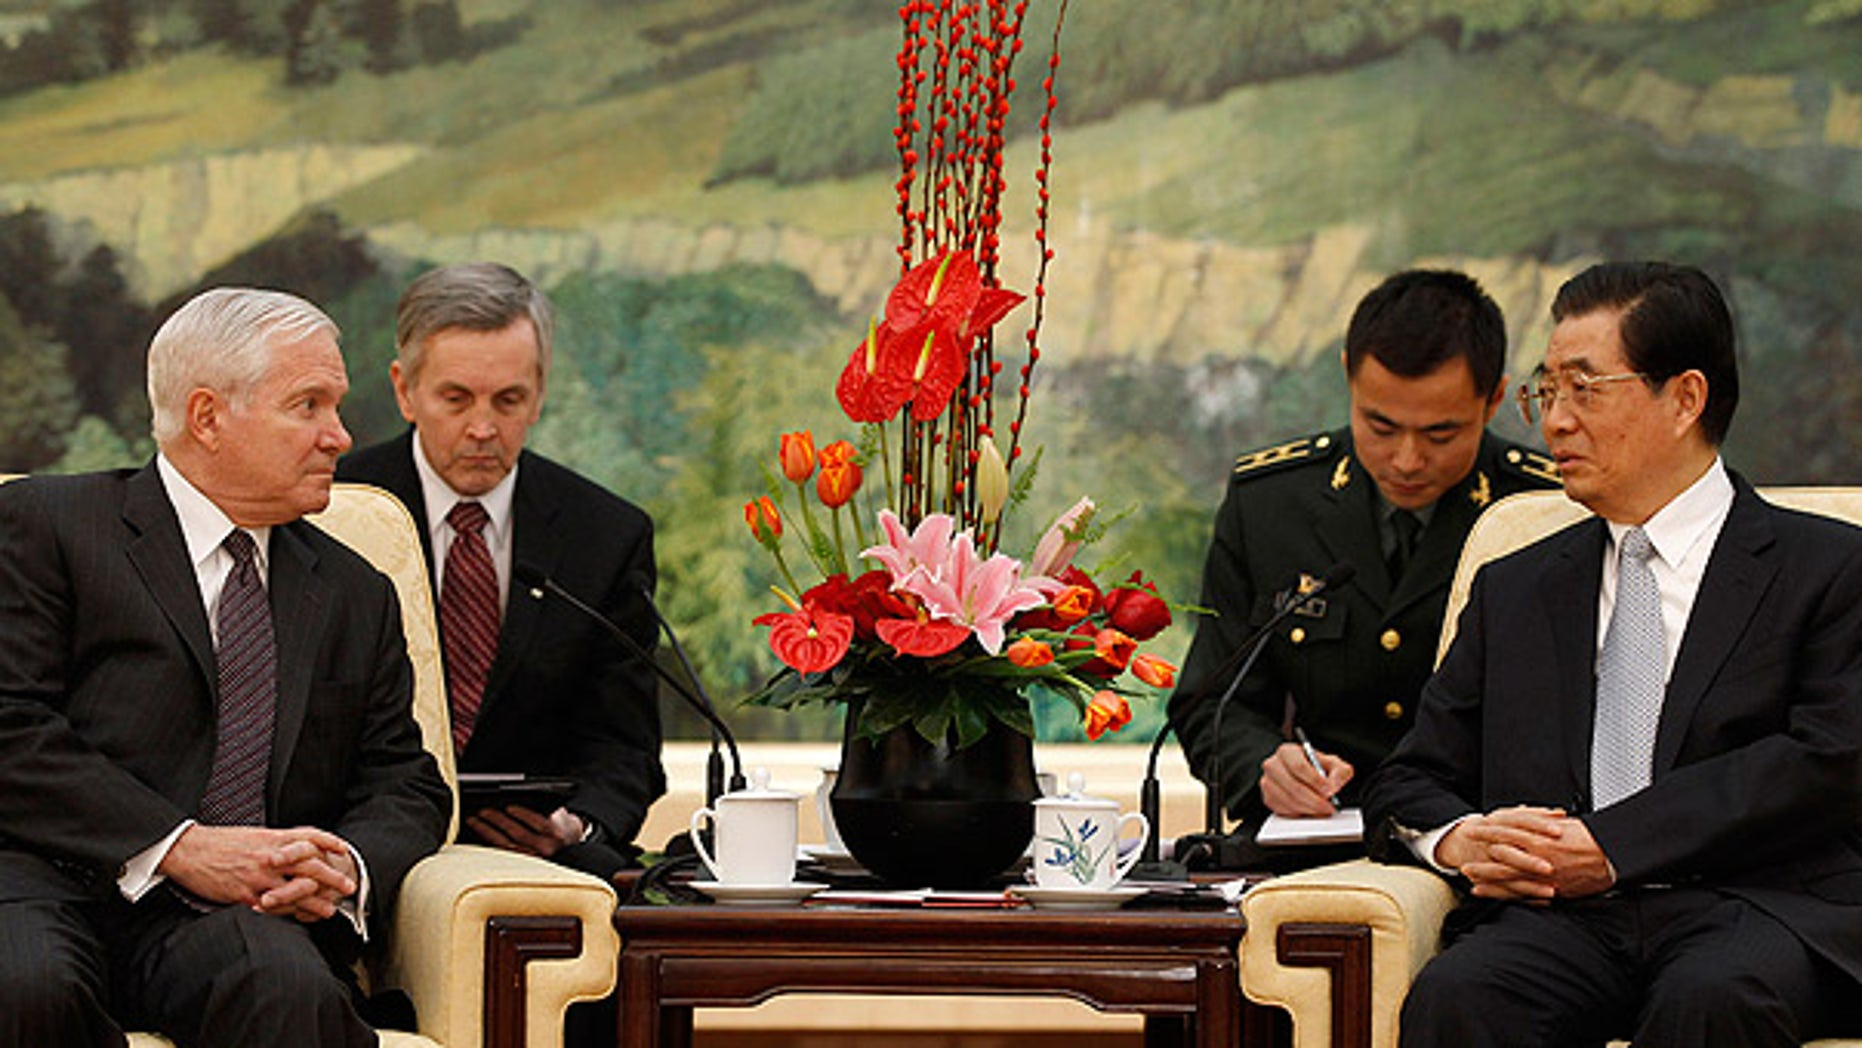 Jan. 11: Secretary of Defense Robert Gates, left, listens to Chinese President Hu Jintao during a meeting at the Great Hall of the People in Beijing.